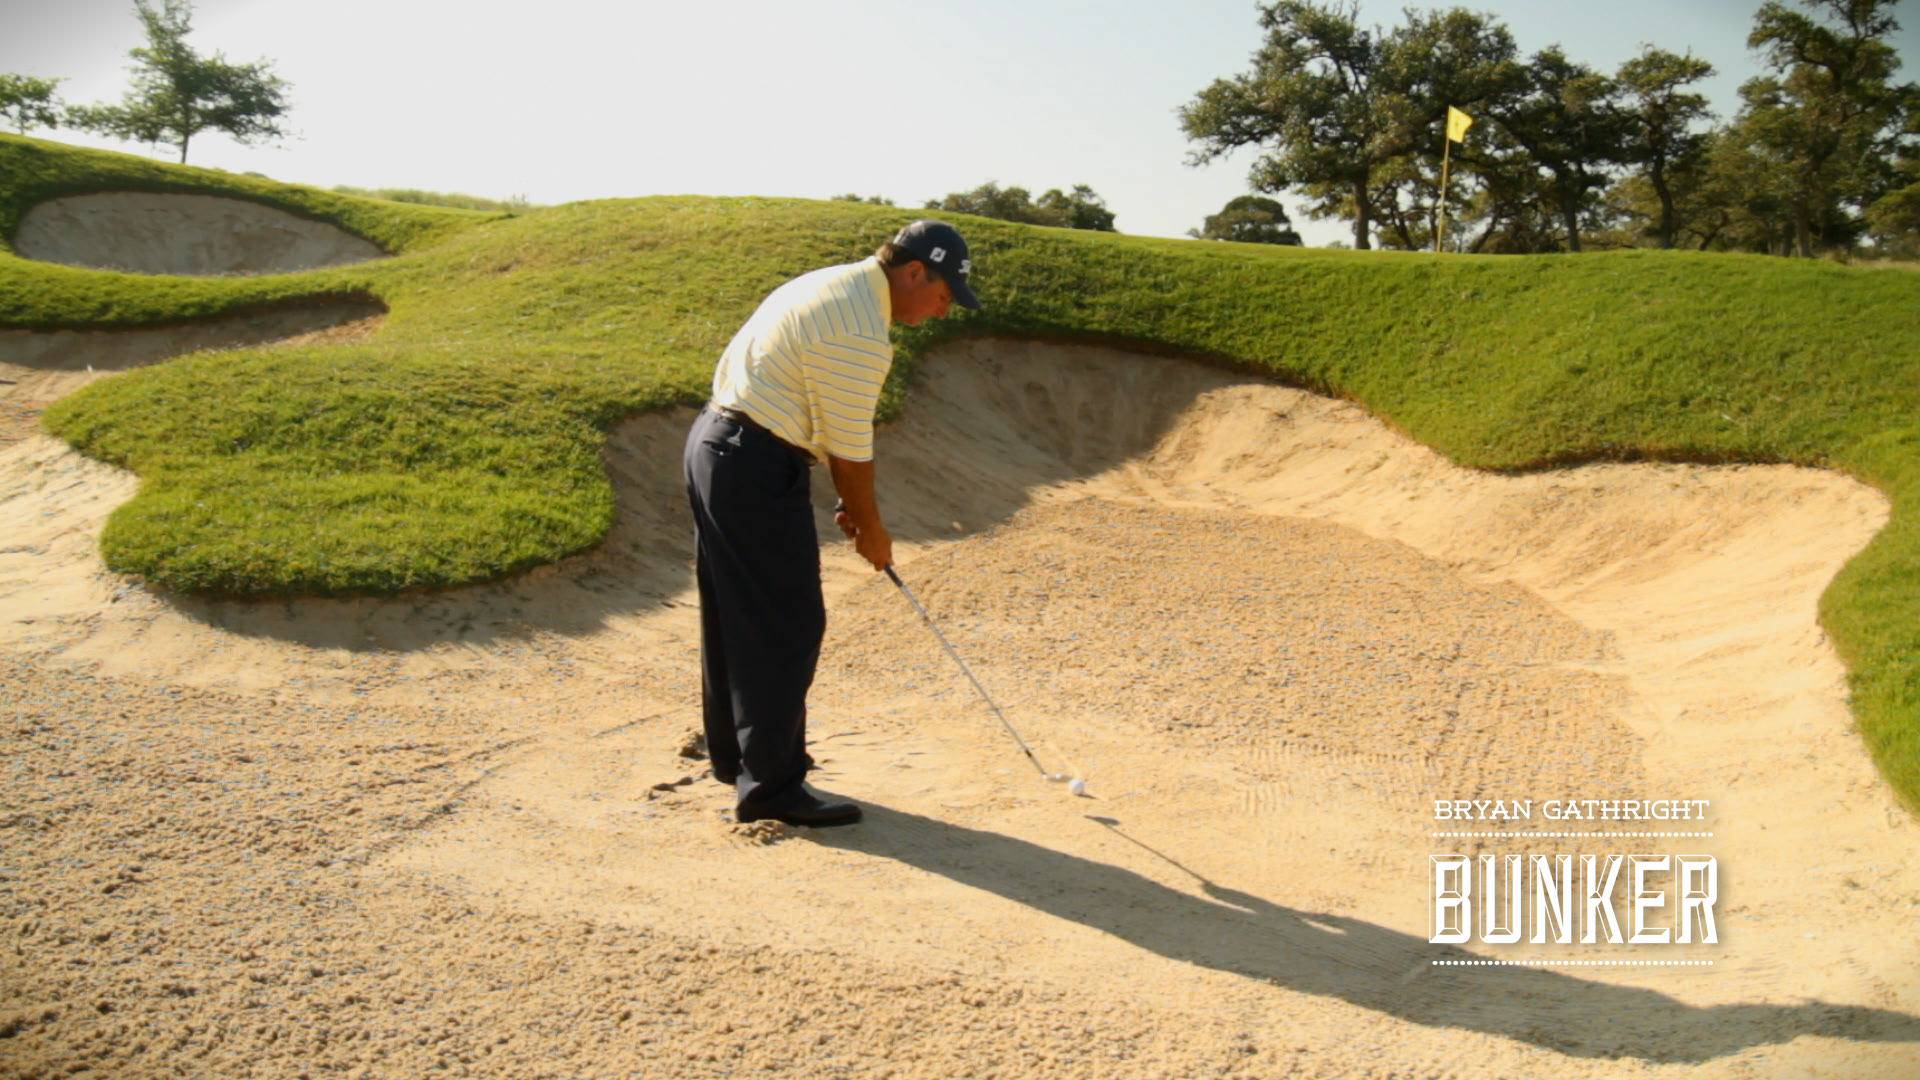 Common Faults and Fixes for Your Bunker Game 2